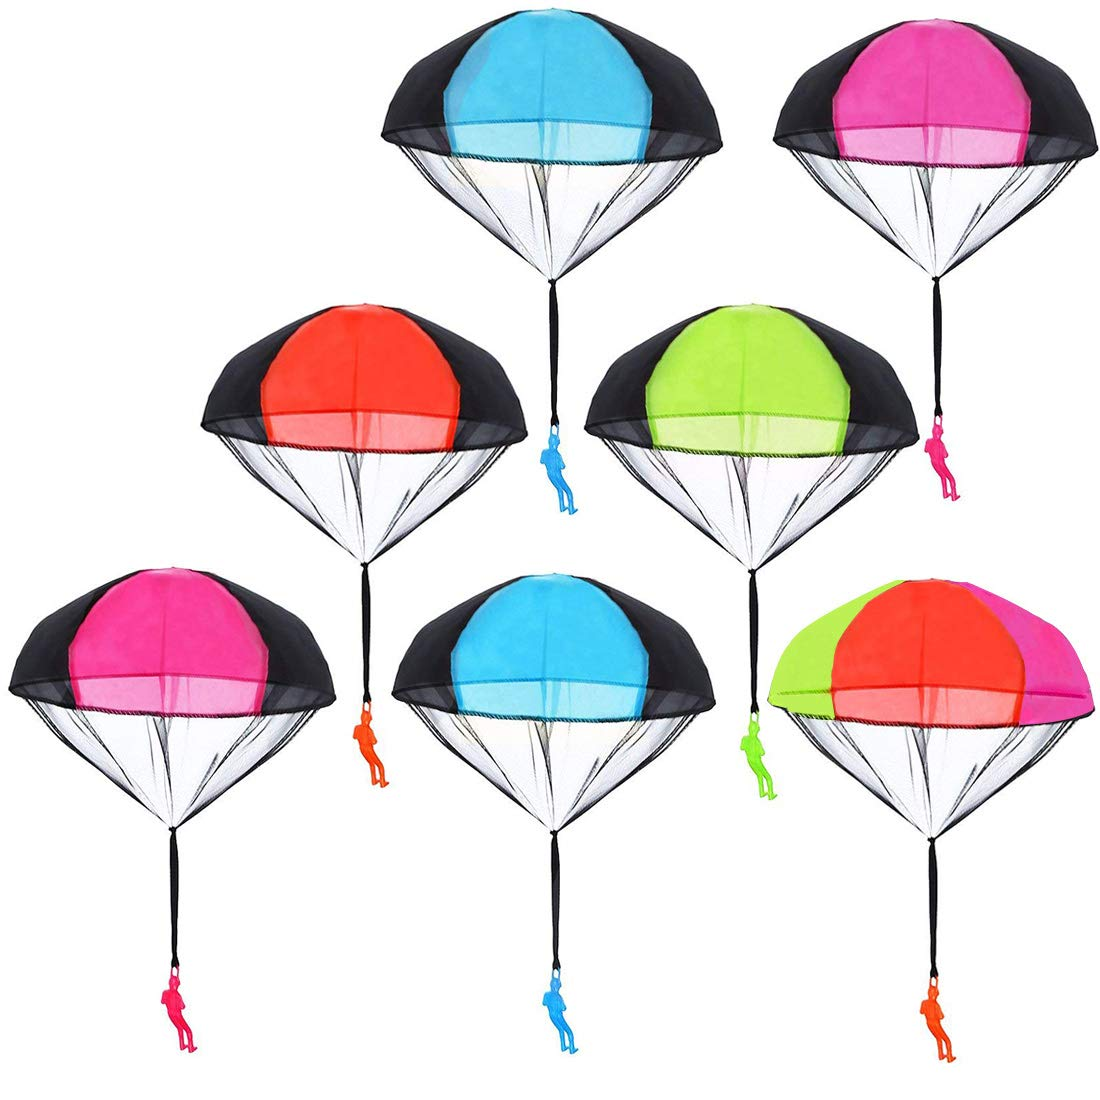 Huihui Decoration 7 Pieces Parachute Toys,Tangle Free Parachute Men Throwing Hand Throw Soldiers Toss It Up and Watching Landing Outdoor Parachute for Kids by Huihui Decoration (Image #1)